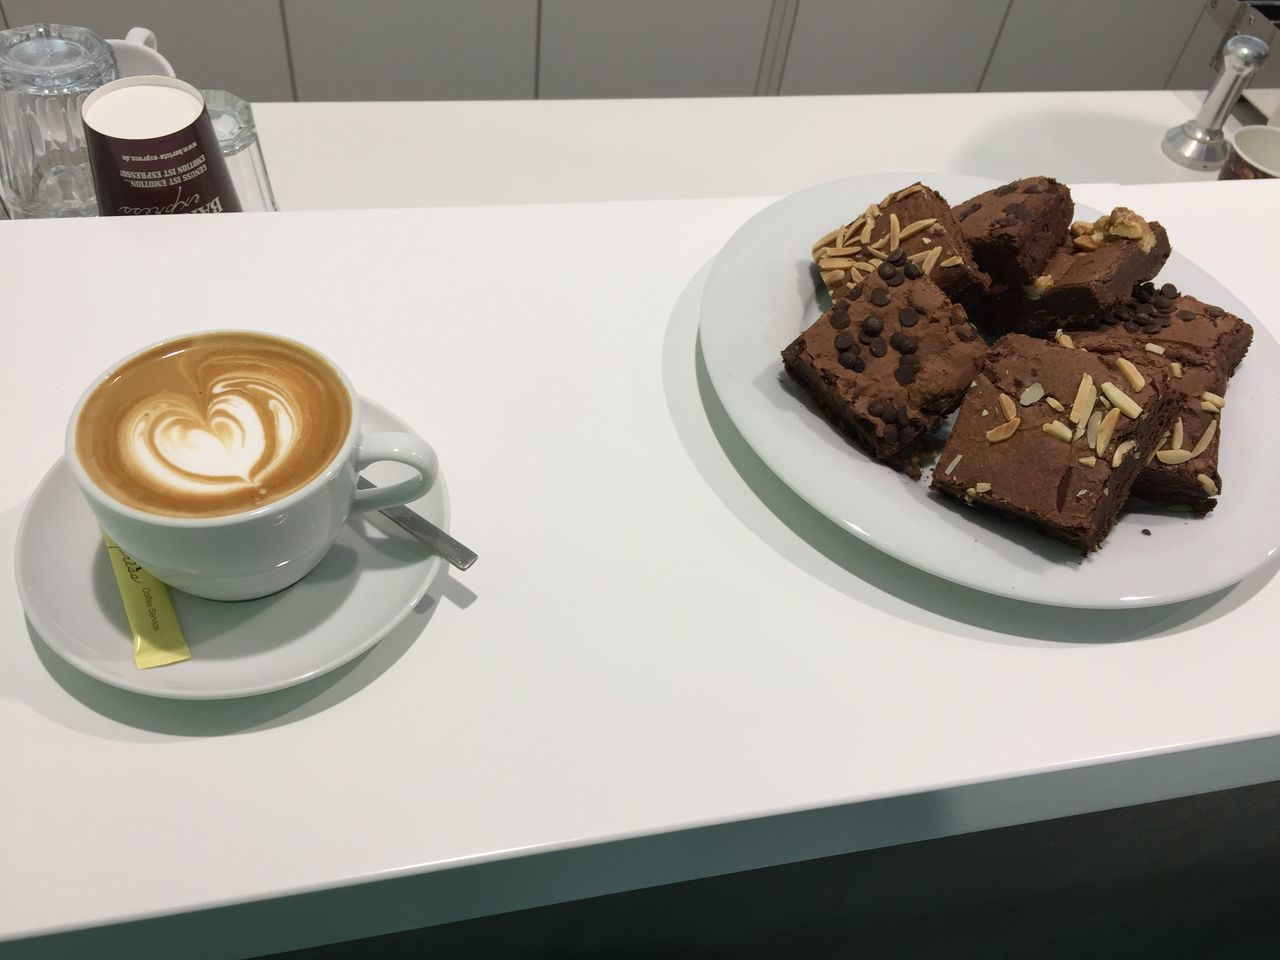 Cappuccino Coffee - Drink Day Drink Food And Drink Freshness Indoors  Latte No People Refreshment Table